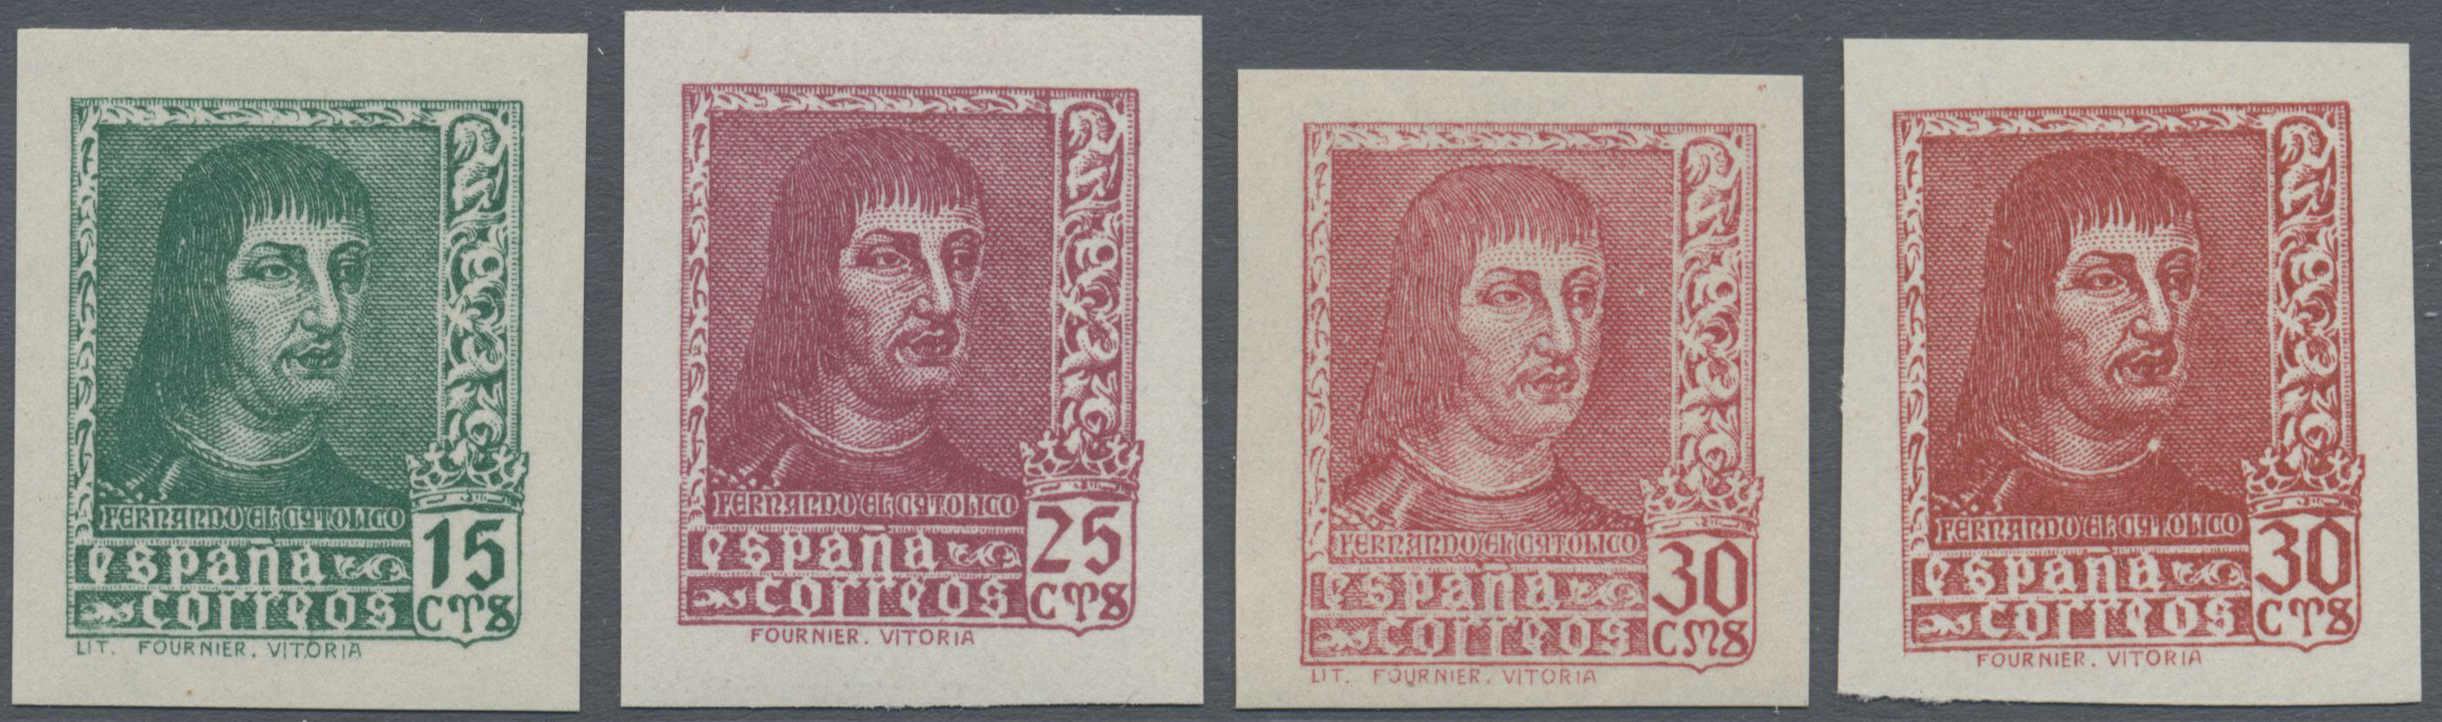 Lot 35064 - spanien  -  Auktionshaus Christoph Gärtner GmbH & Co. KG Sale #44 Collections Germany